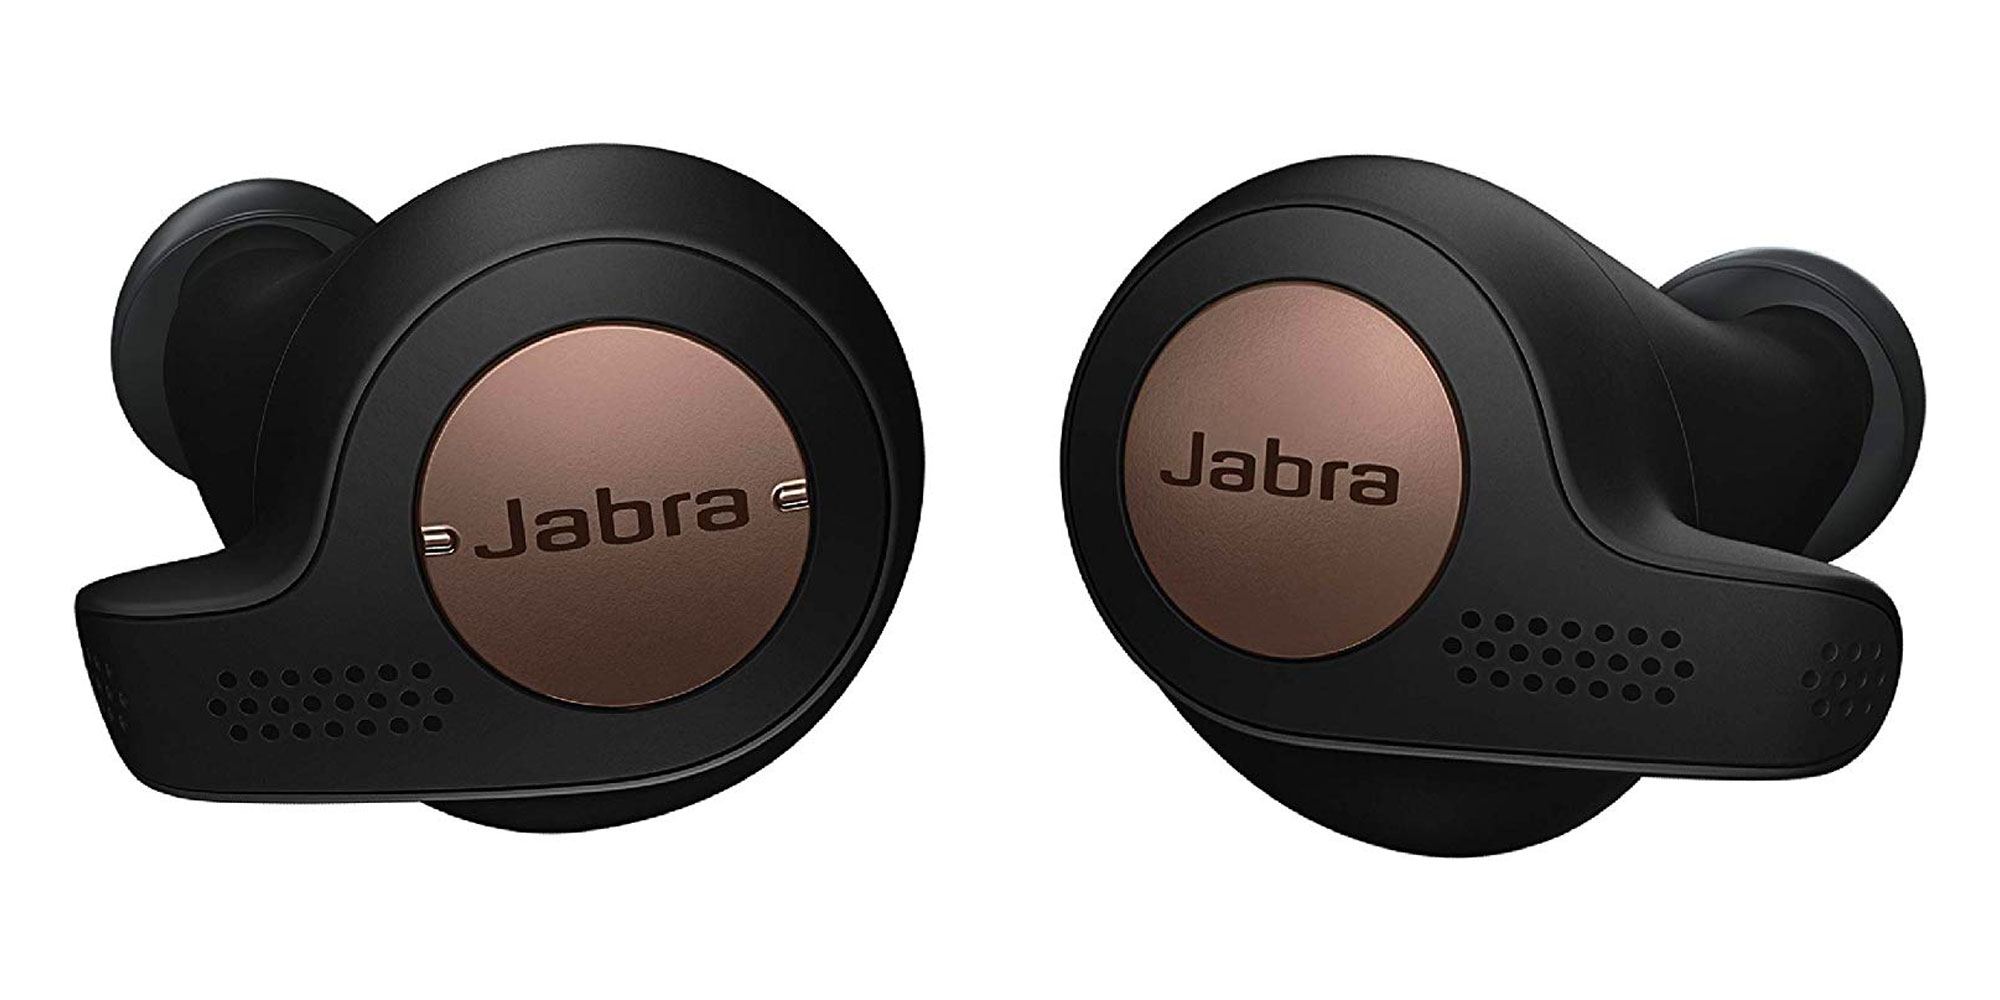 Save 20 On Jabra S Sweat Proof Elite Active 65t True Wireless Earbuds At 115 9to5toys